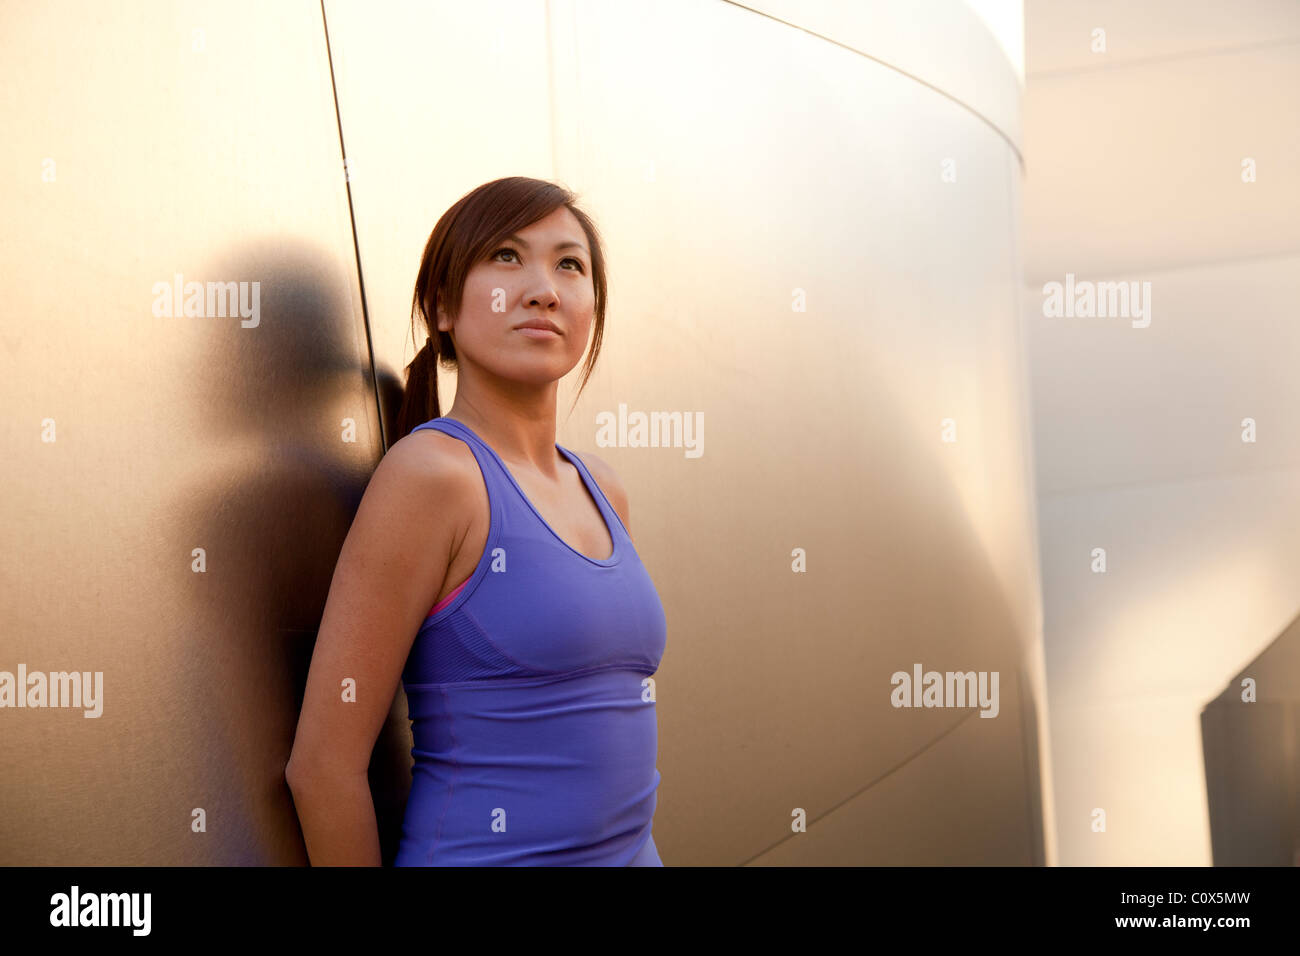 Asian American female runner resting leaning against metal clad wall.  Purple tank top and black pants. - Stock Image